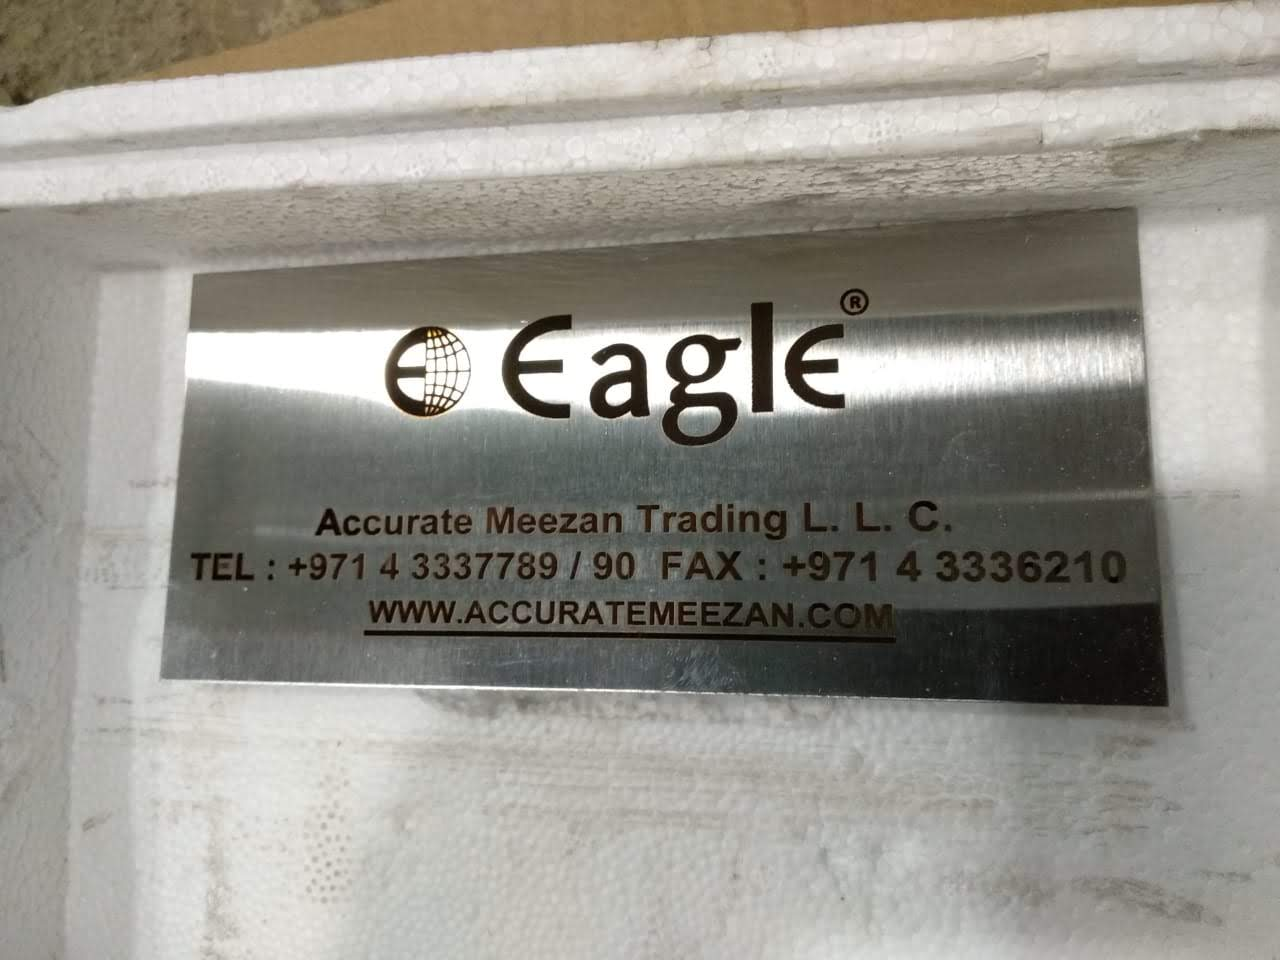 Laser engraved stainless steel plate